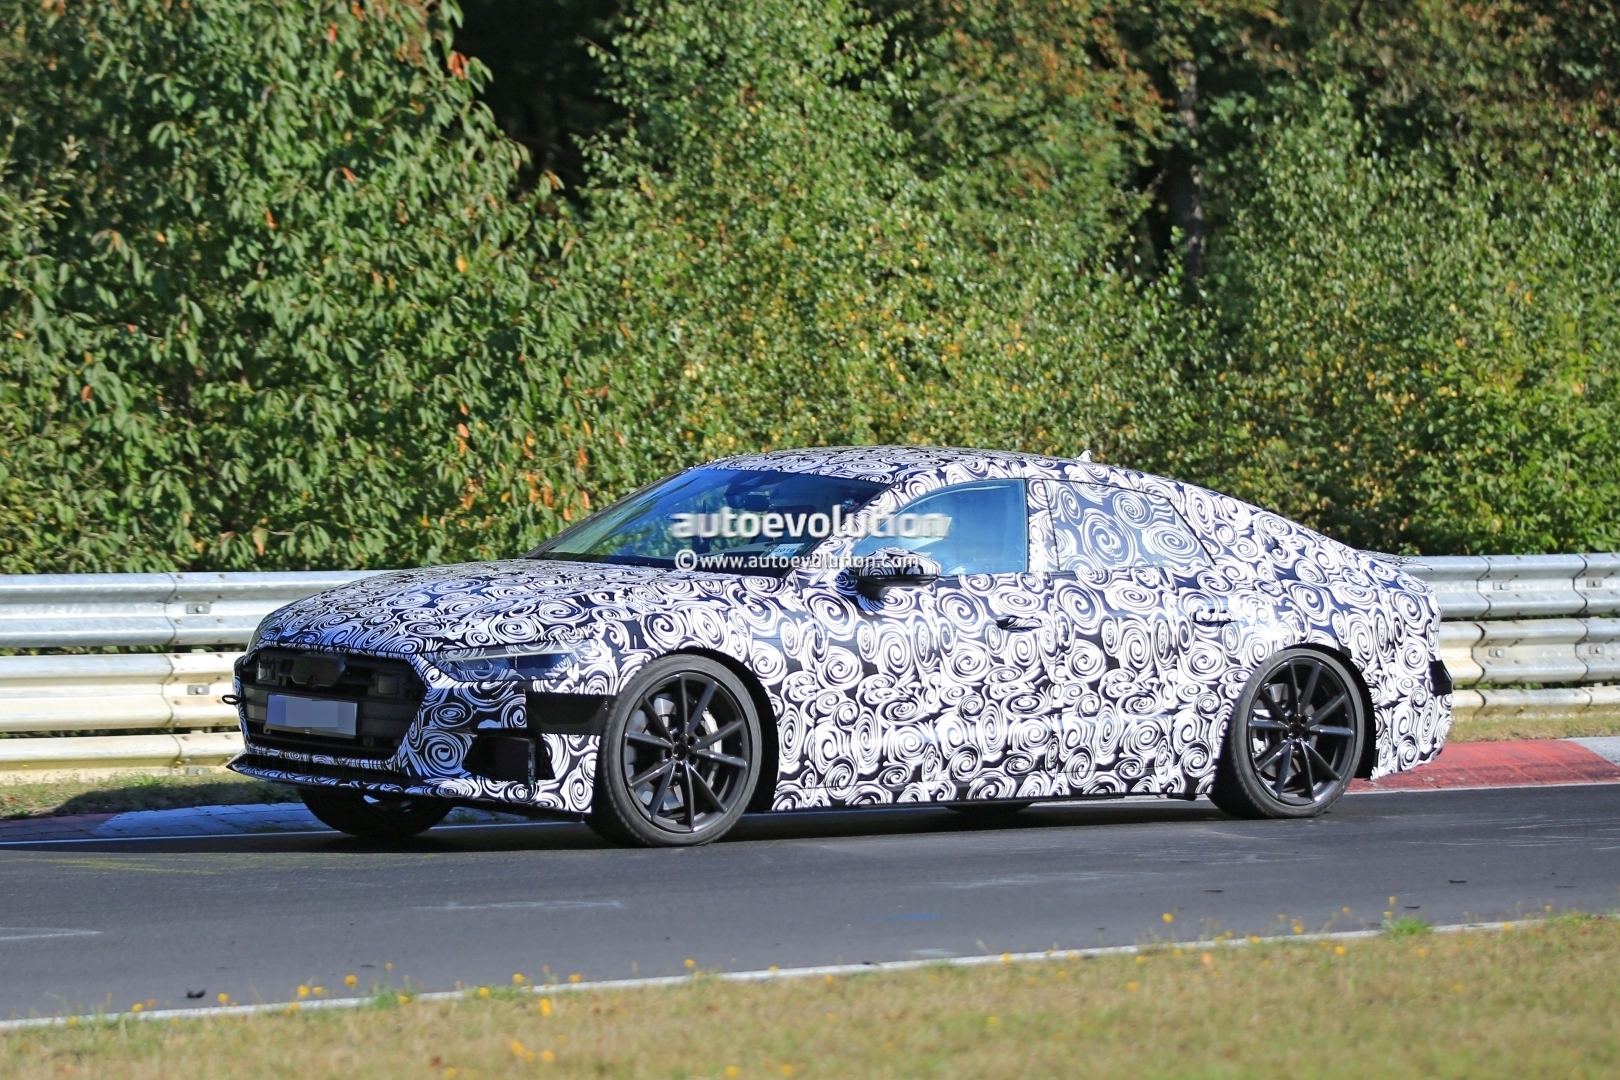 Audi S Laps Nurburgring Early Reveals Serious Performance - 2018 audi s7